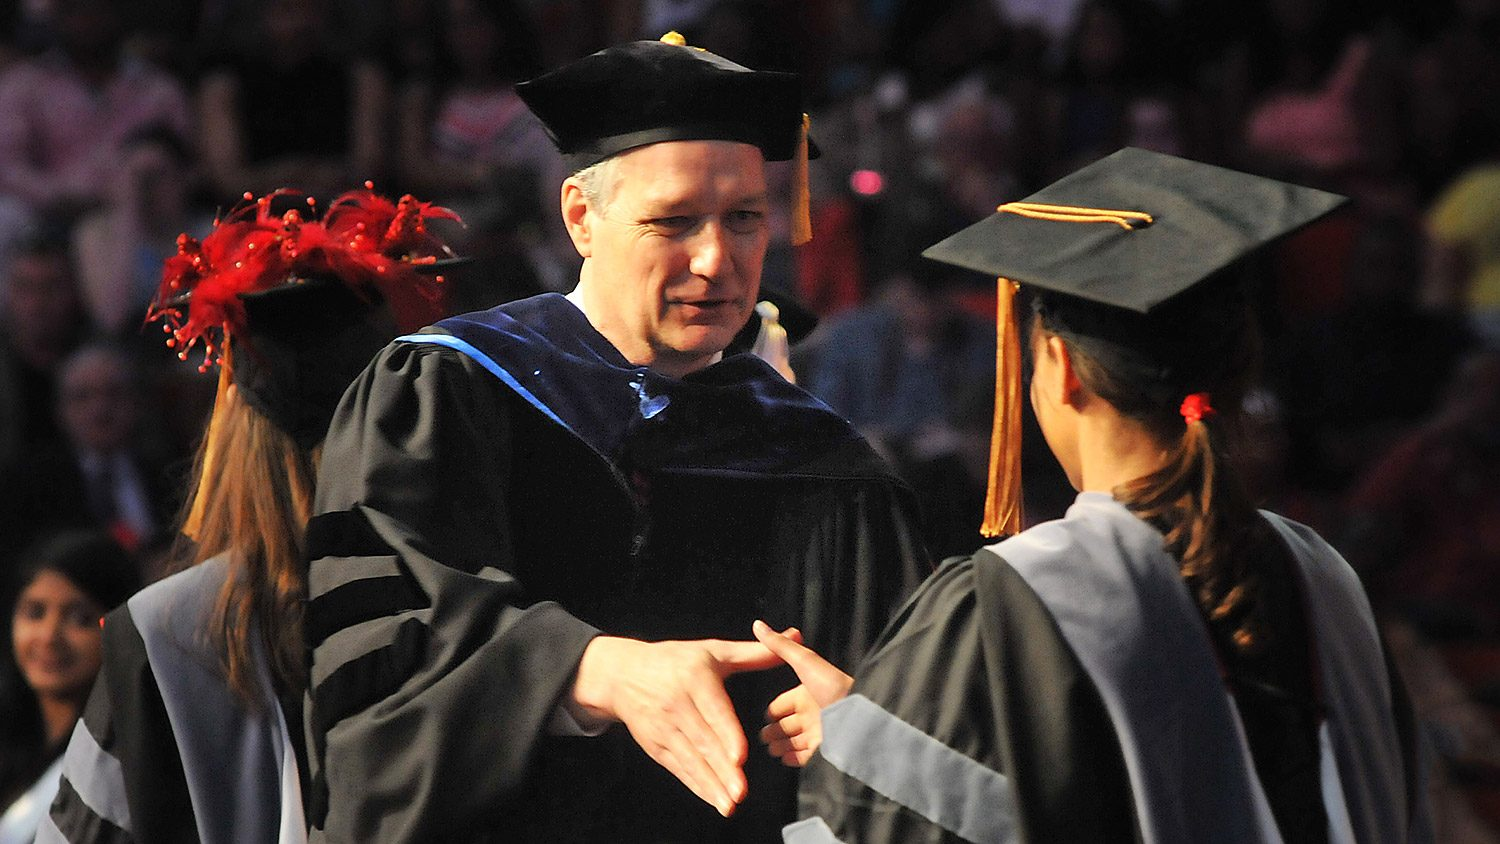 Executive Vice Chancellor and Provost Warwick Arden shakes a students' hand at commencement